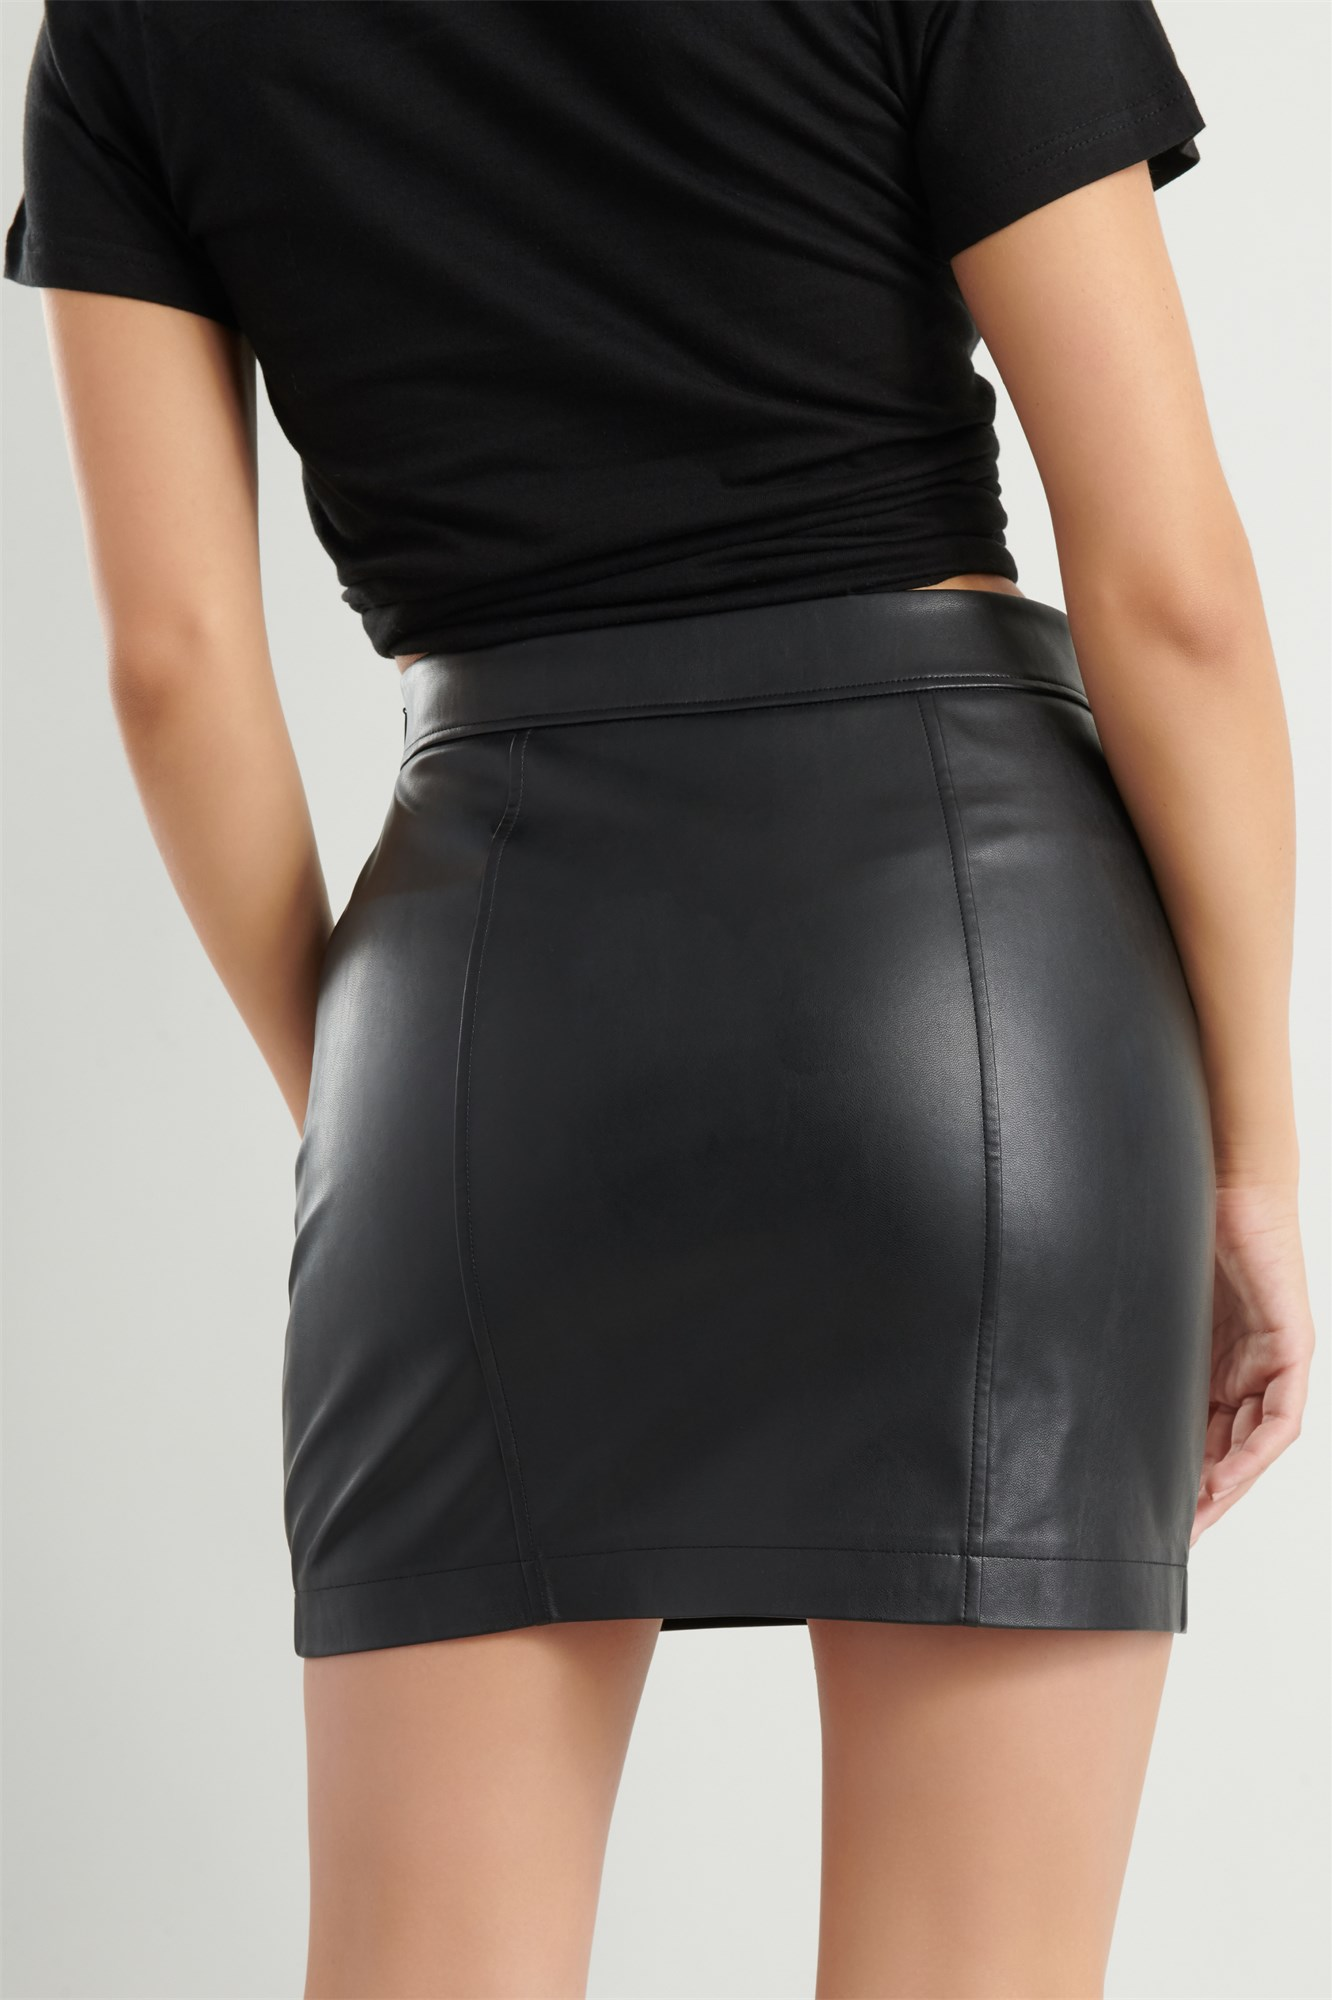 Image 5 of Faux Leather Skirt